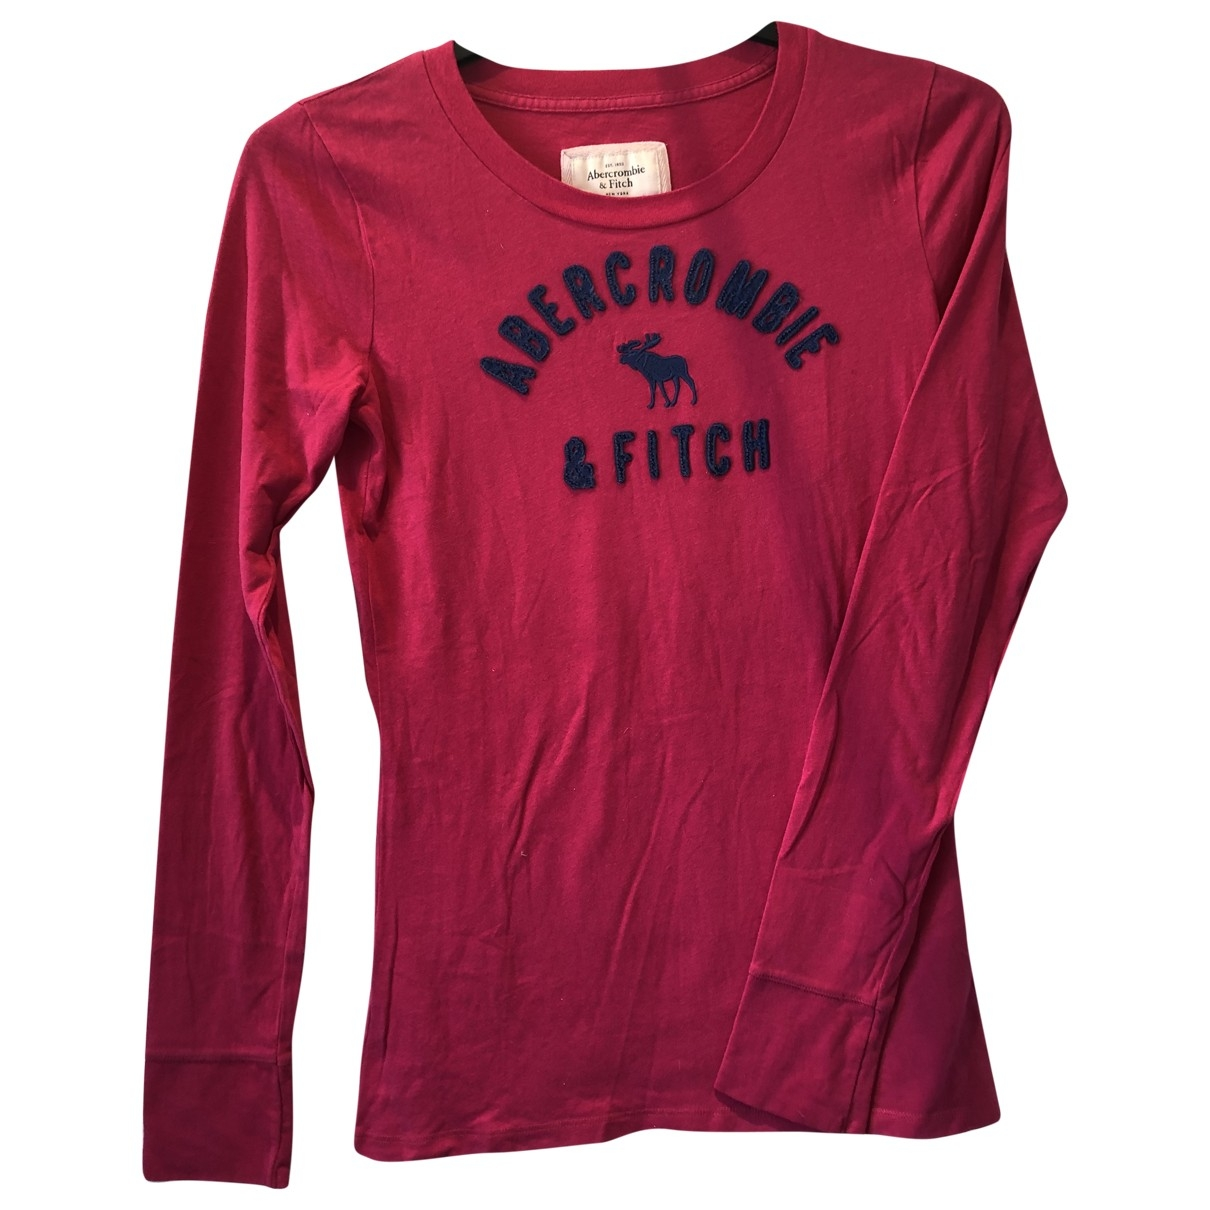 Abercrombie & Fitch \N Pink Cotton  top for Women M International